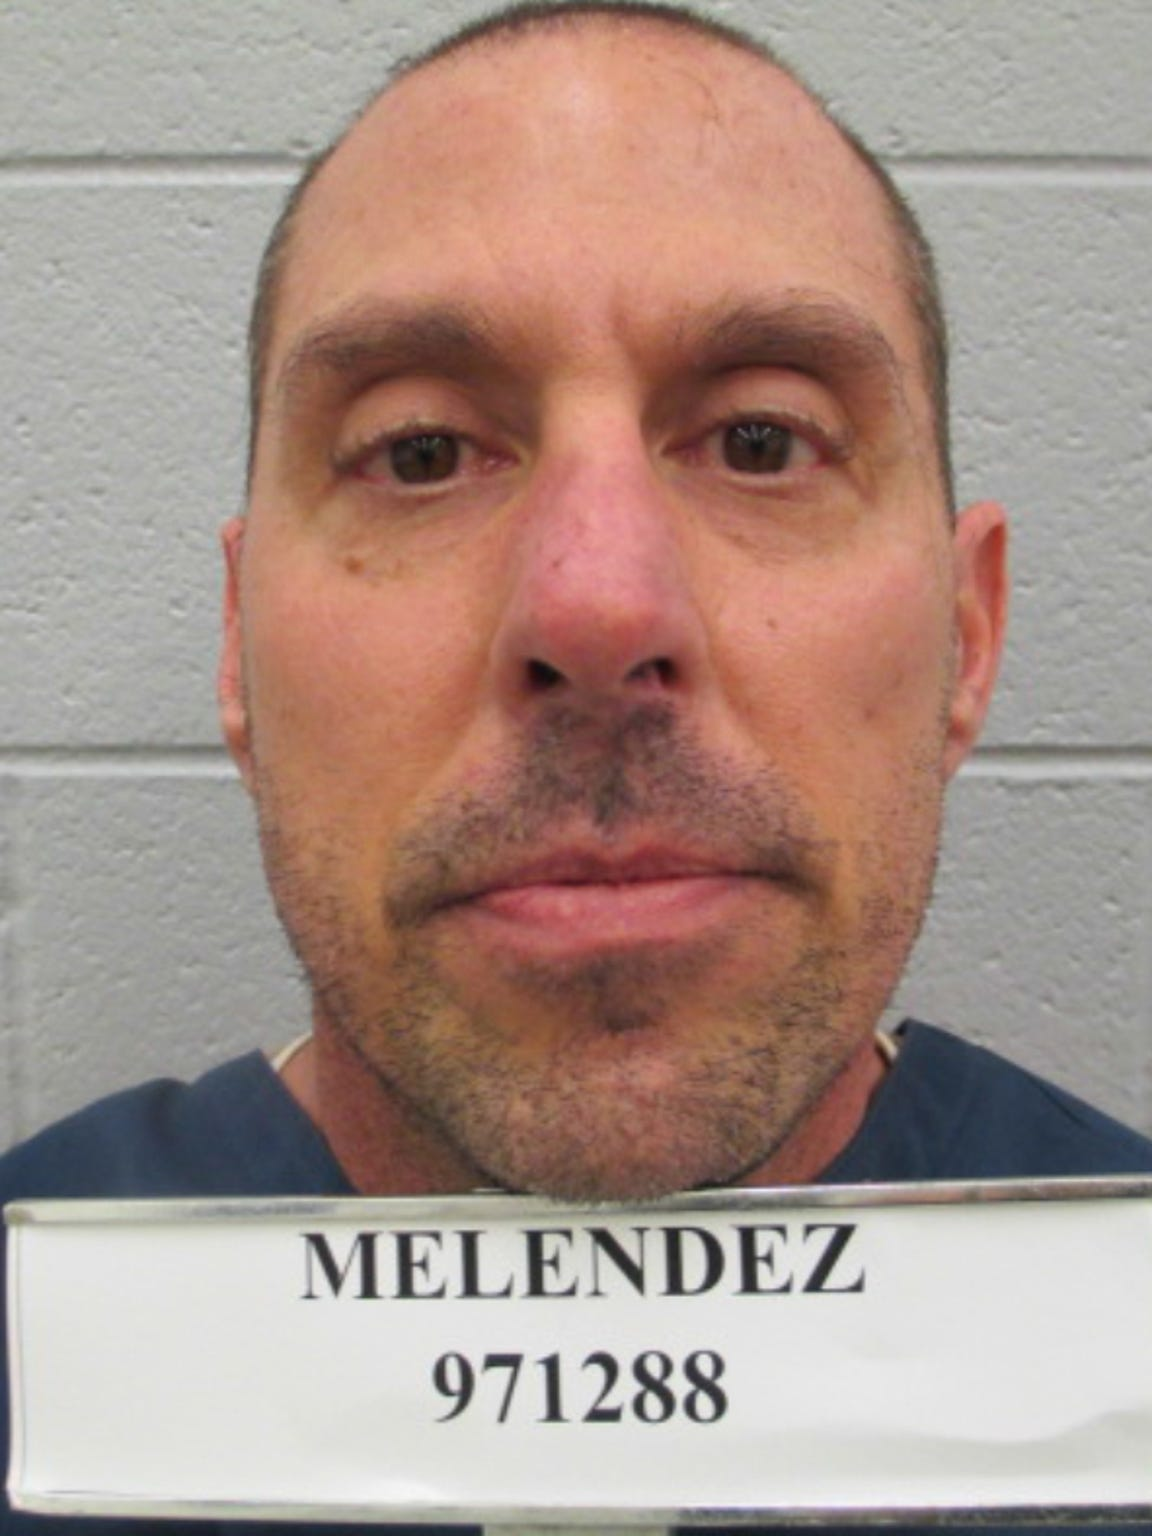 Former Inkster police officer William Melendez was